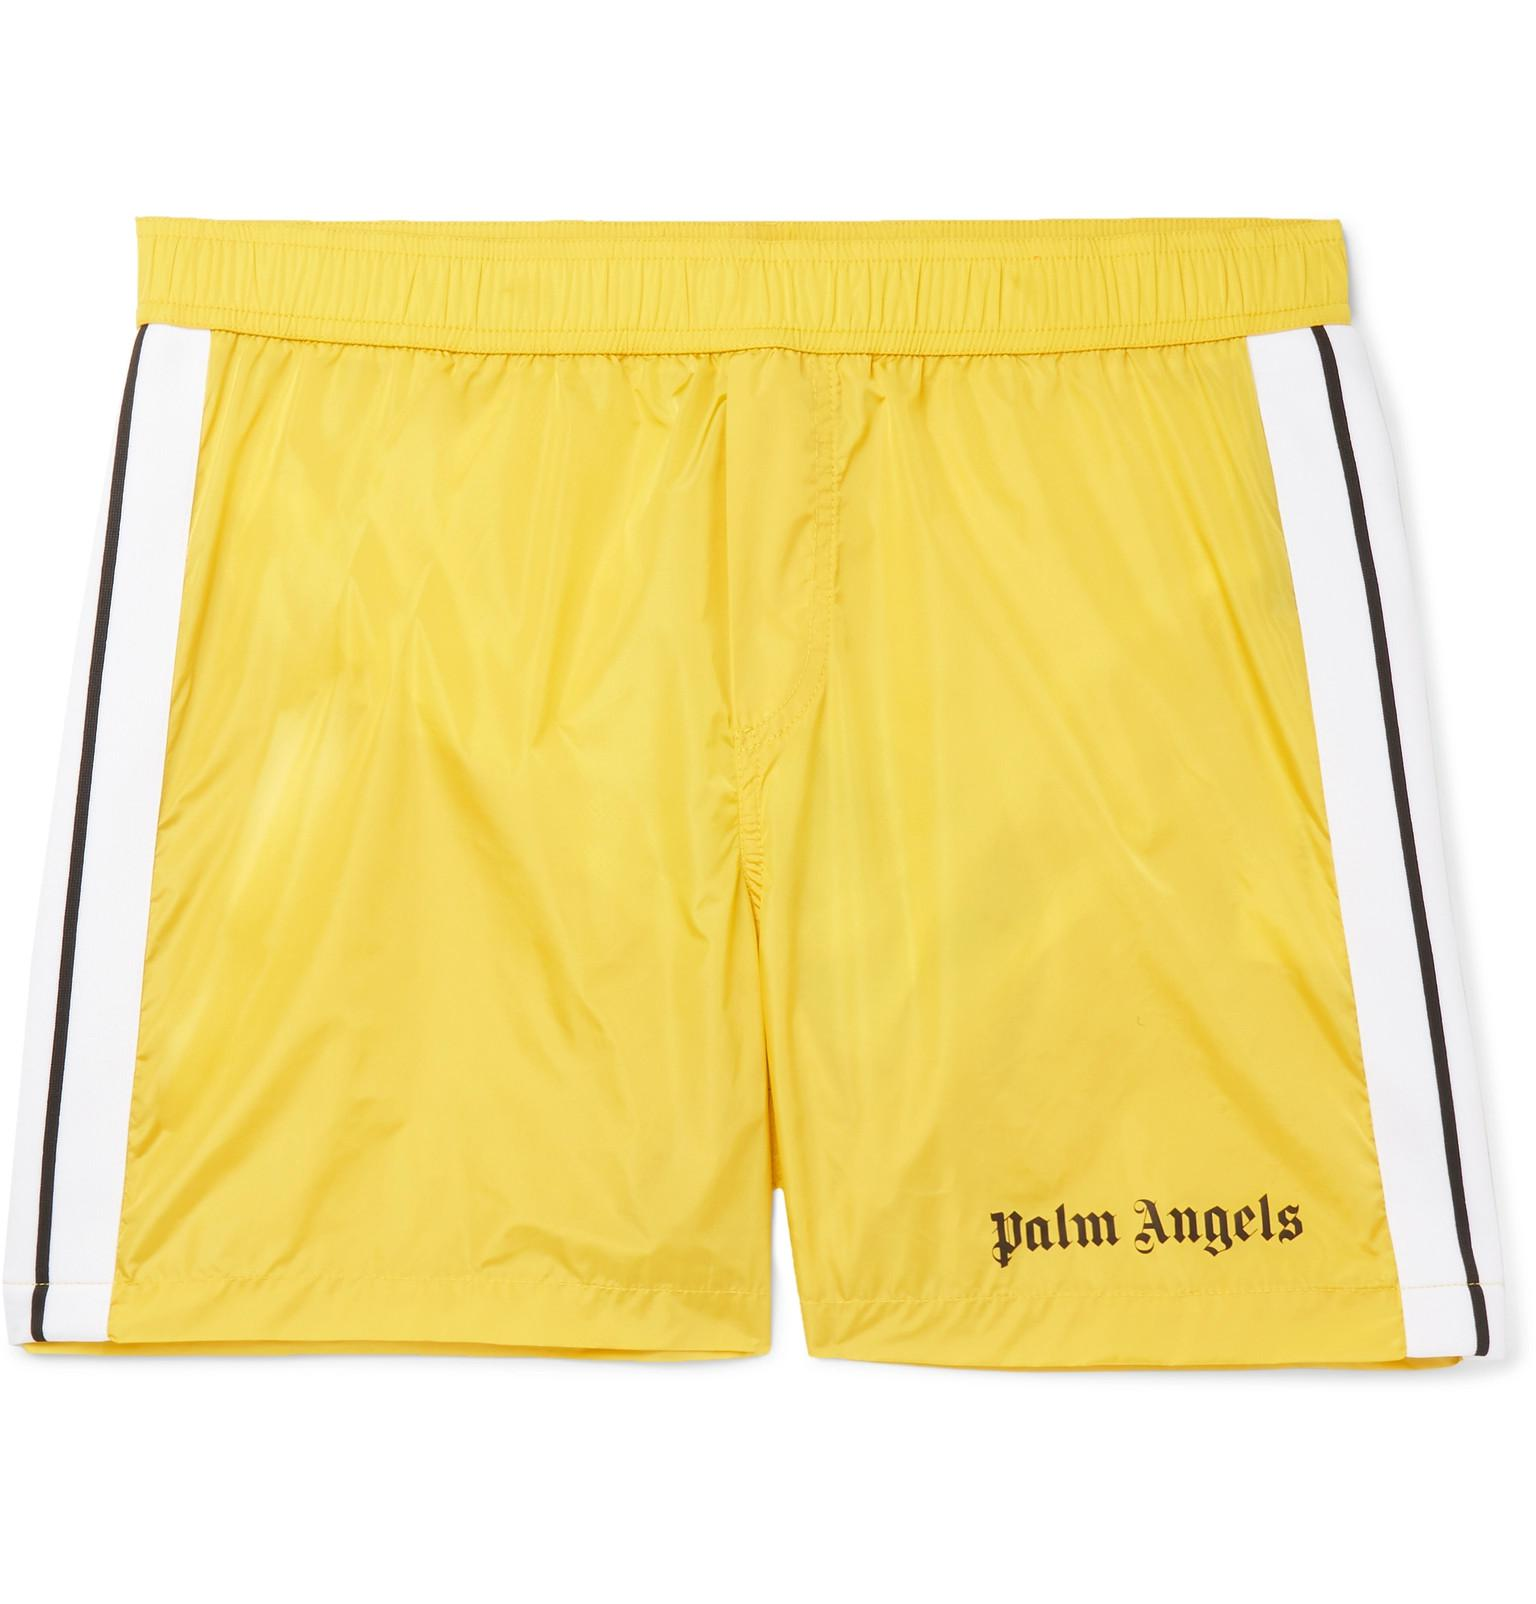 571425a38d Palm Angels - Yellow Mid-length Striped Swim Shorts for Men - Lyst. View  fullscreen